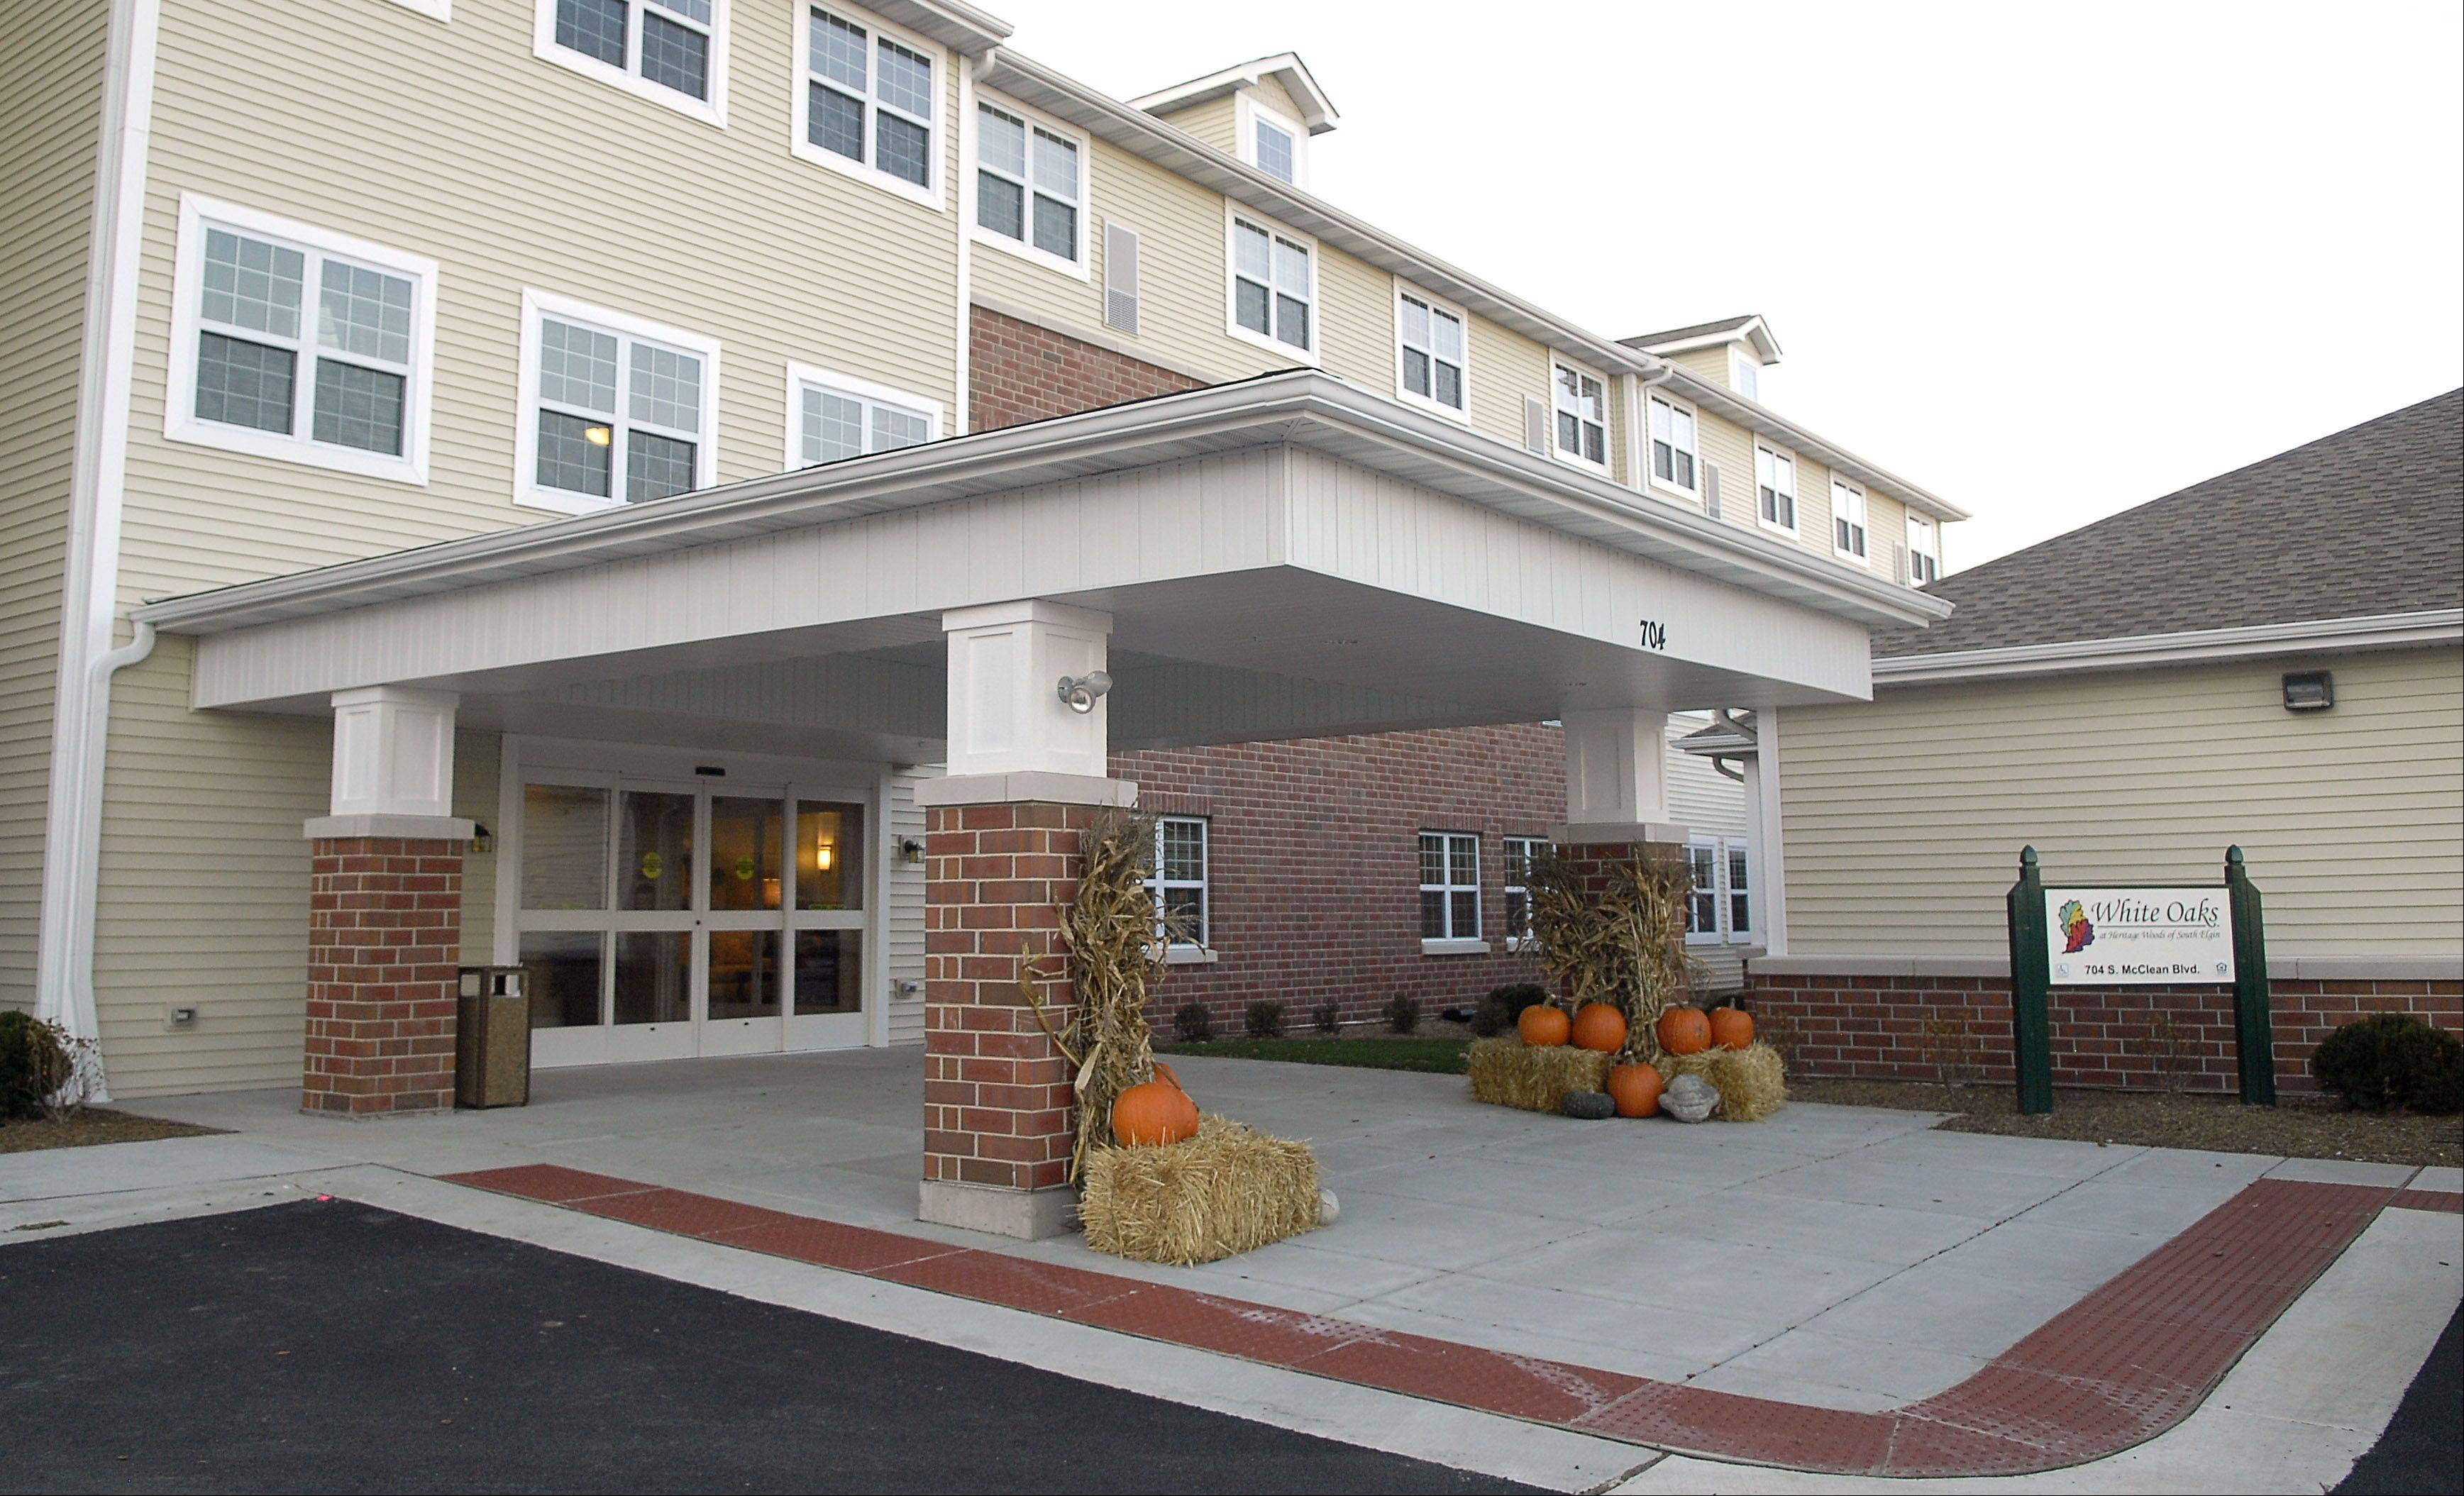 White Oaks at Heritage Woods of South Elgin offers 32 apartment homes for seniors older than 65 with Alzheimer�s disease or related dementia. It�s an addition to the Heritage Woods assisted-living facility that opened in 2009.